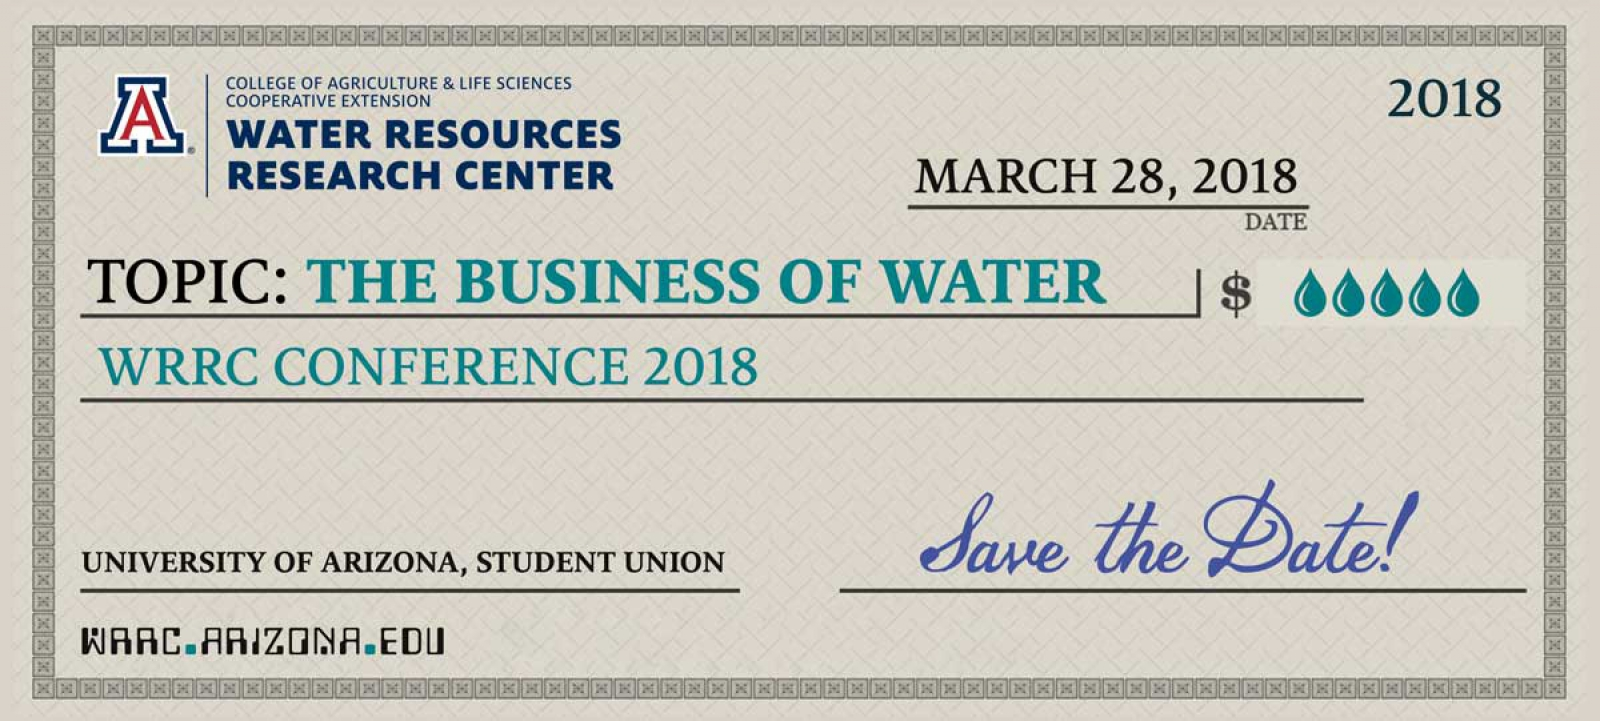 The Business of Water info card graphic. resembles a check